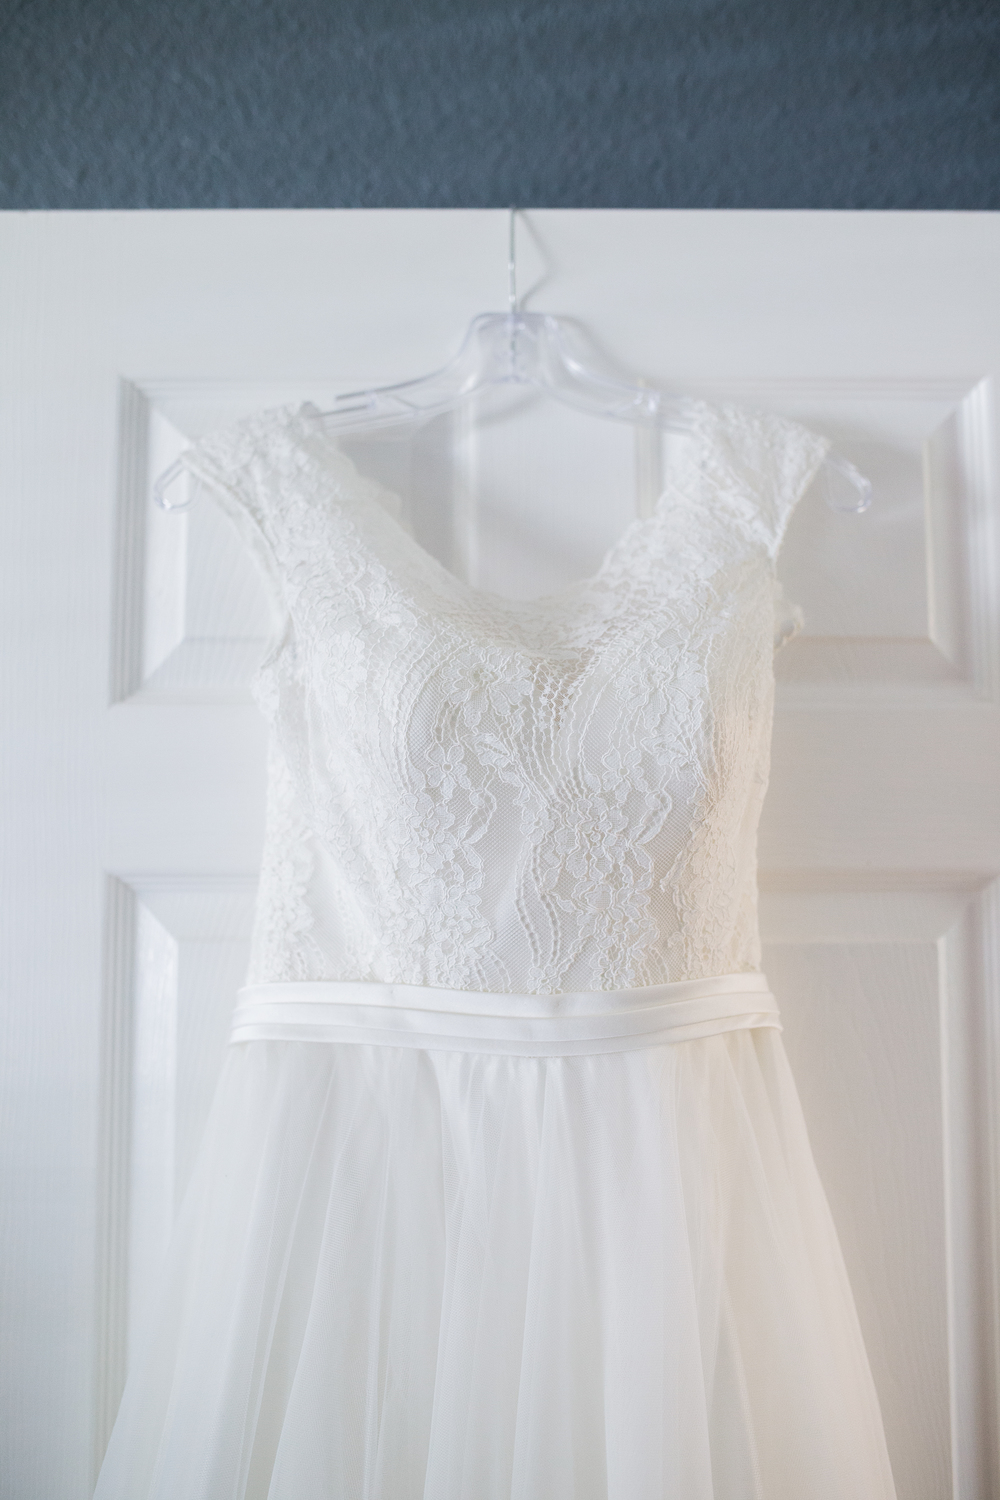 Lace wedding gown - Coohills Wedding